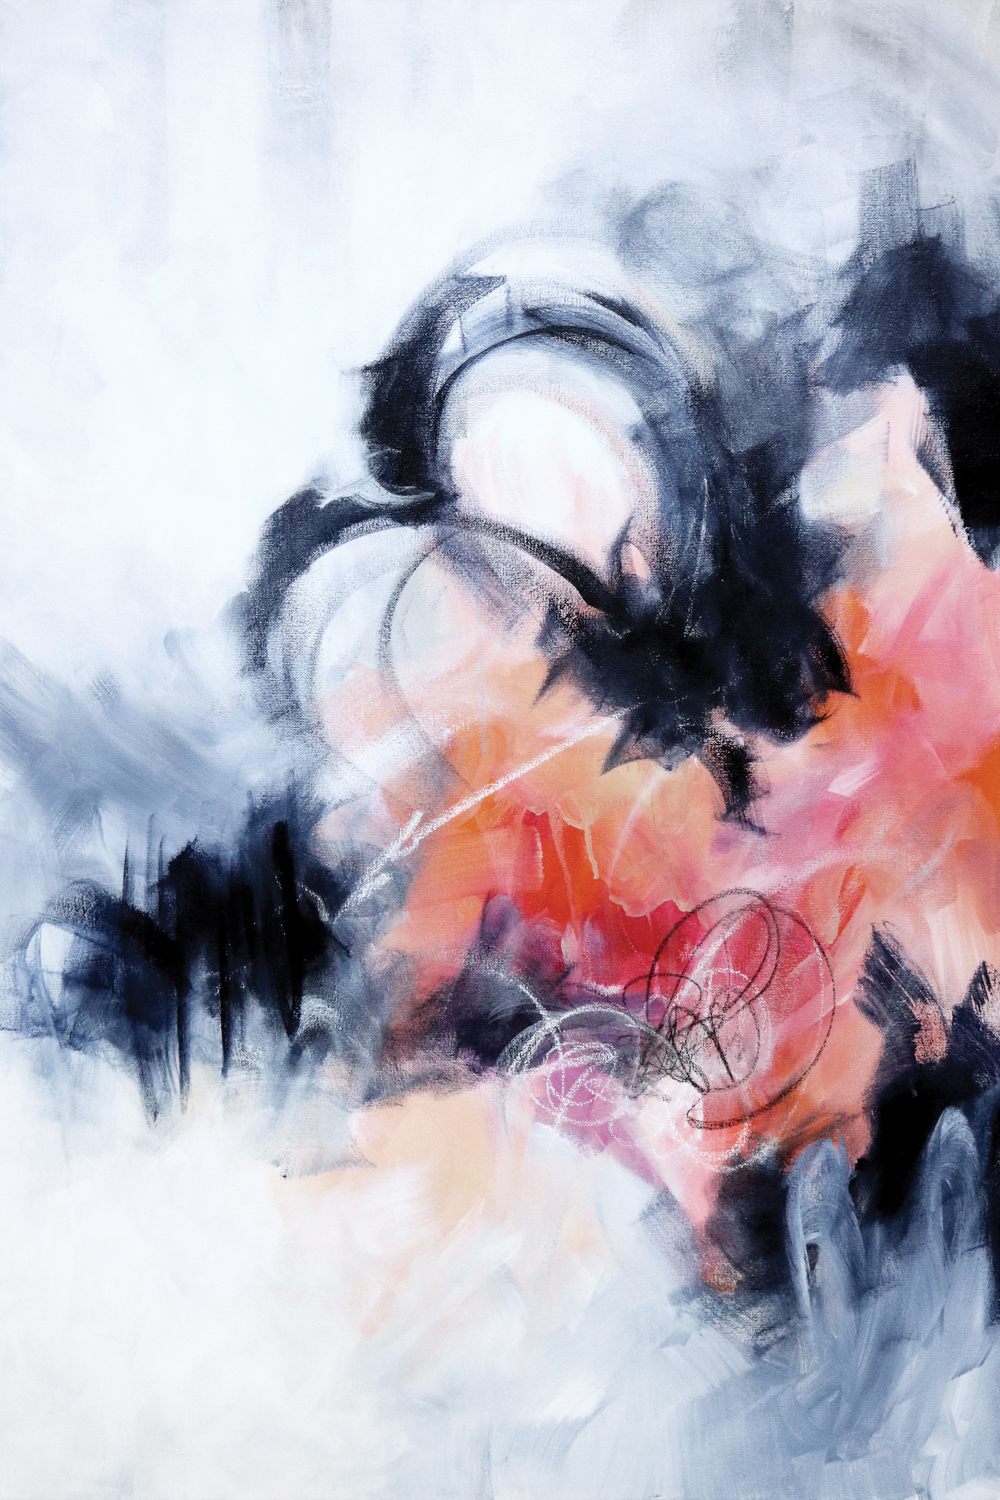 Abstract image of soft brush strokes of black, gray, white, coral, pink and red